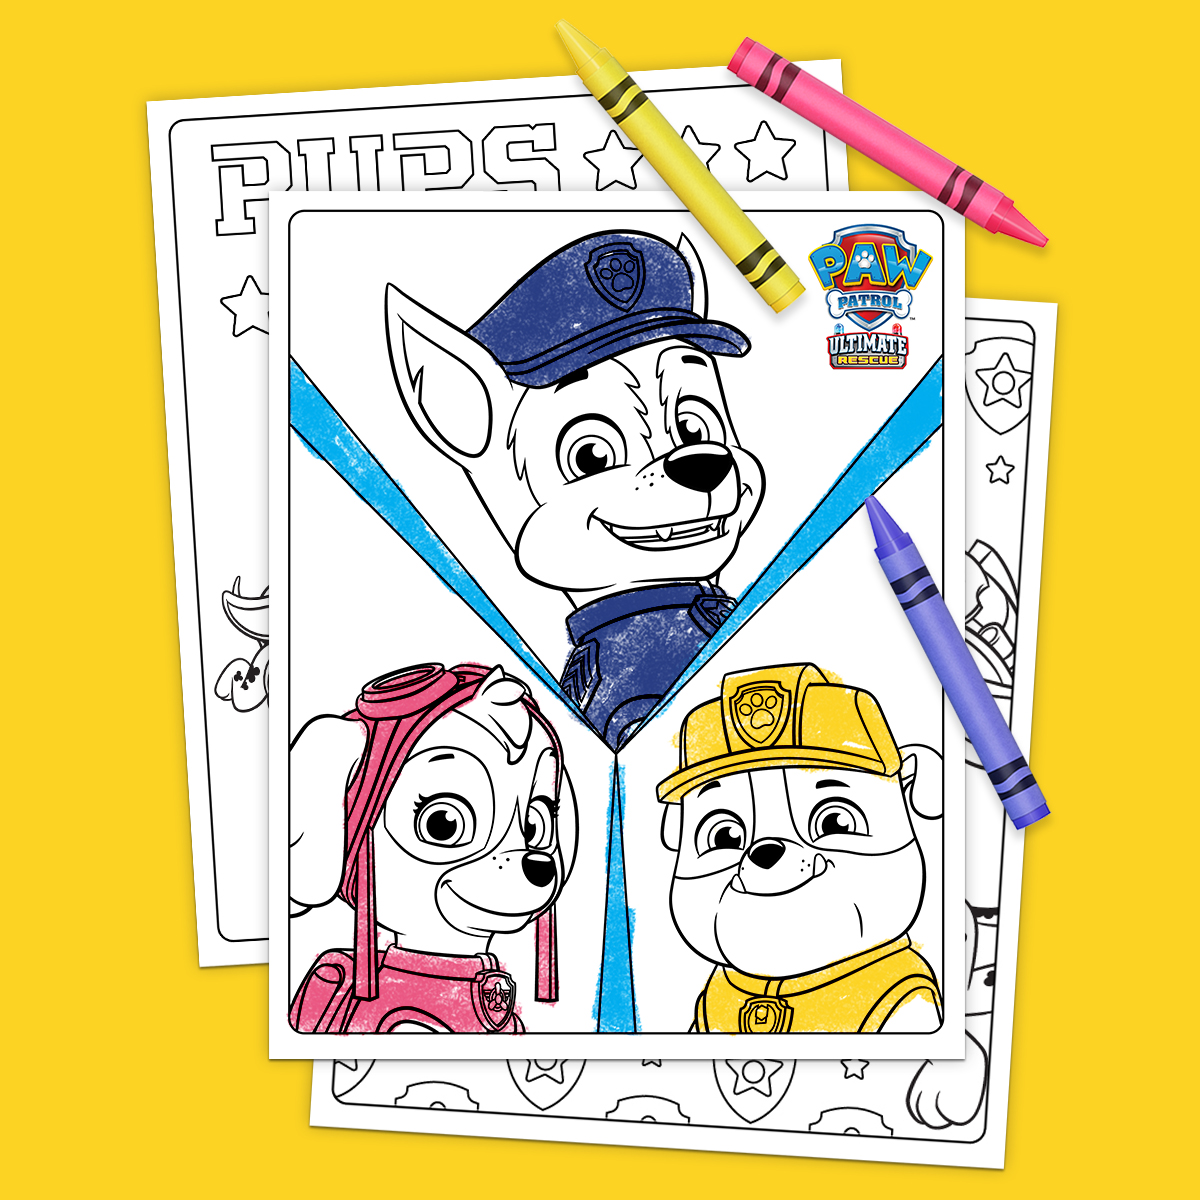 PAW Patrol Ultimate Rescue Coloring Pages | Nickelodeon ...